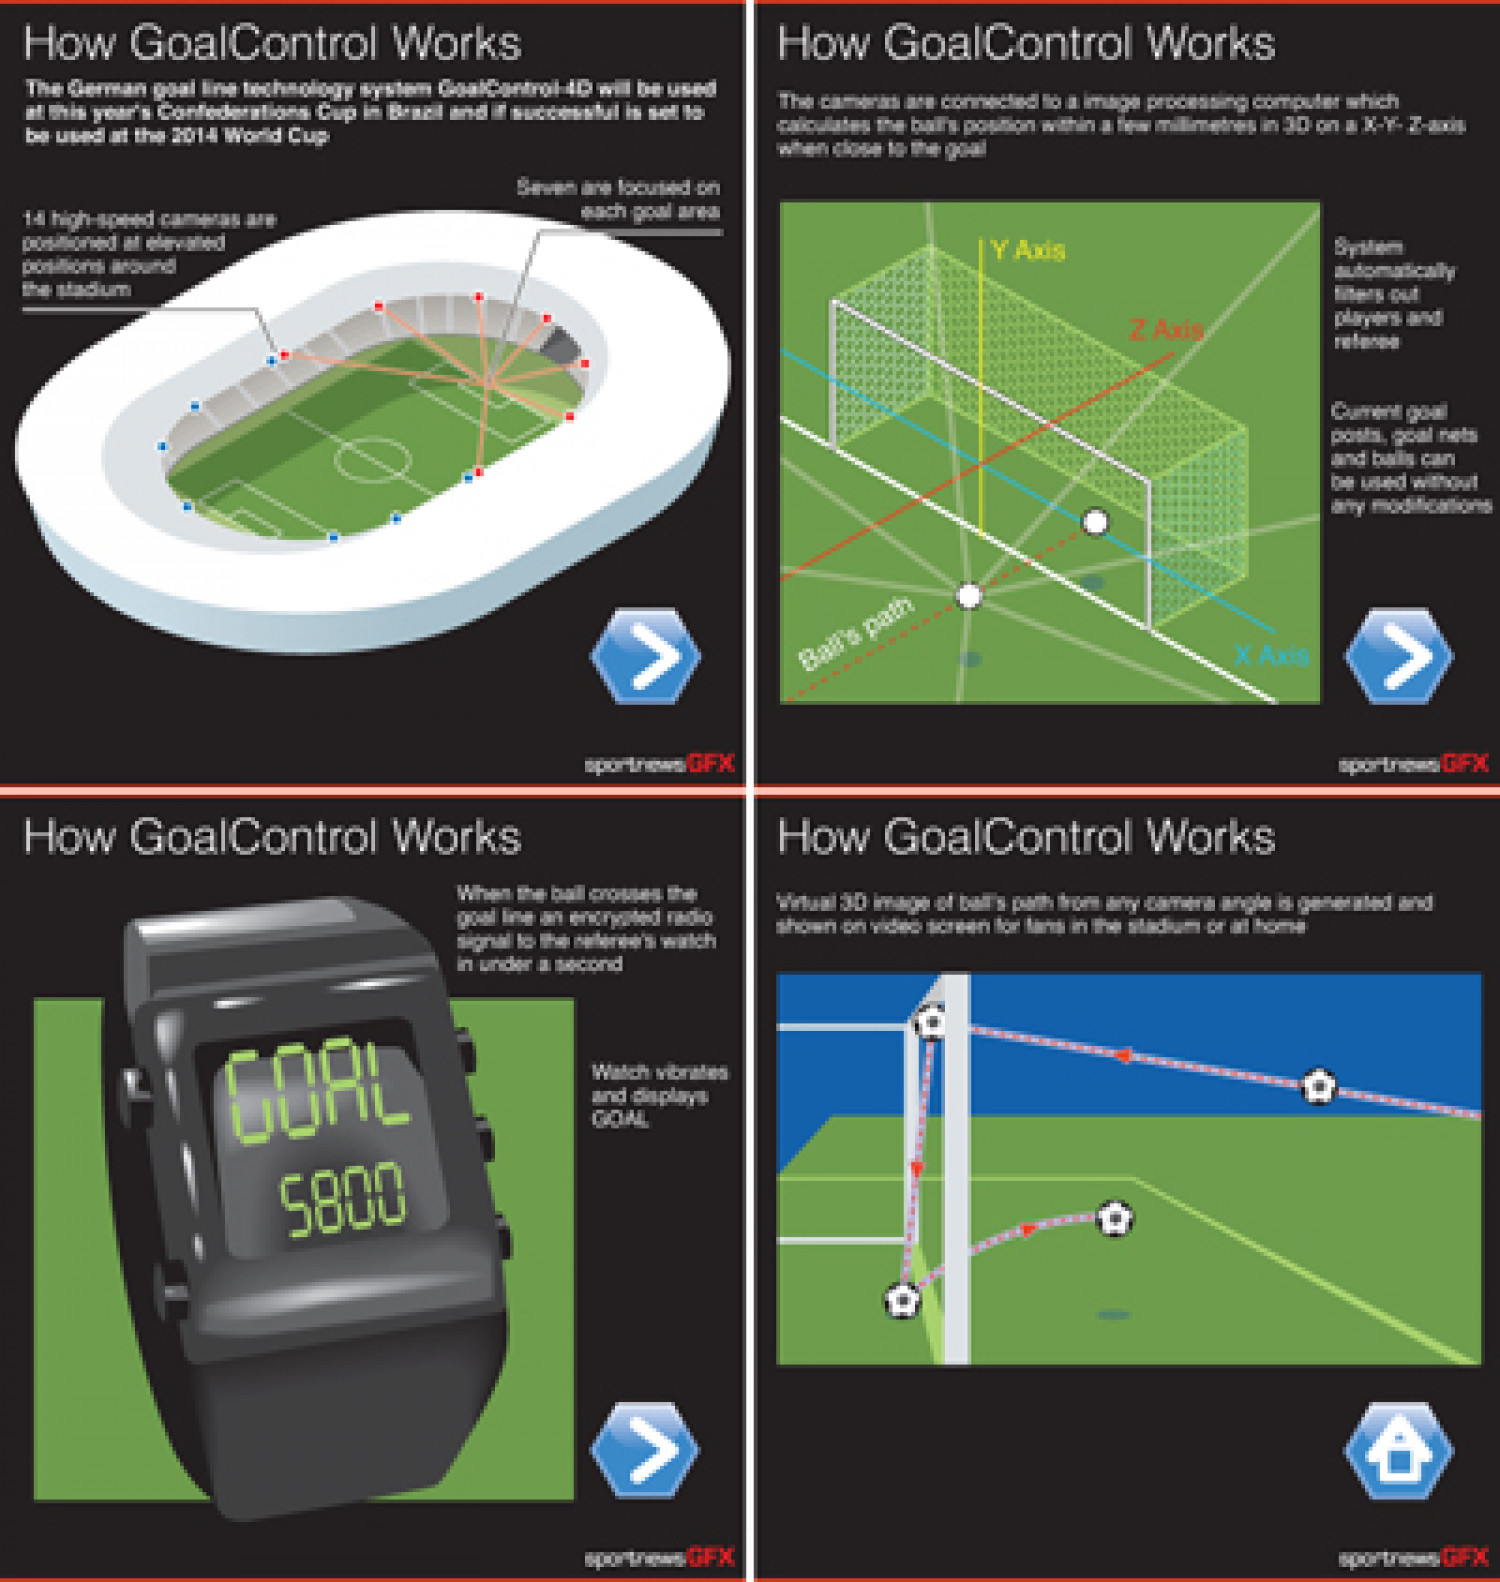 Goal Control technology explained Infographic